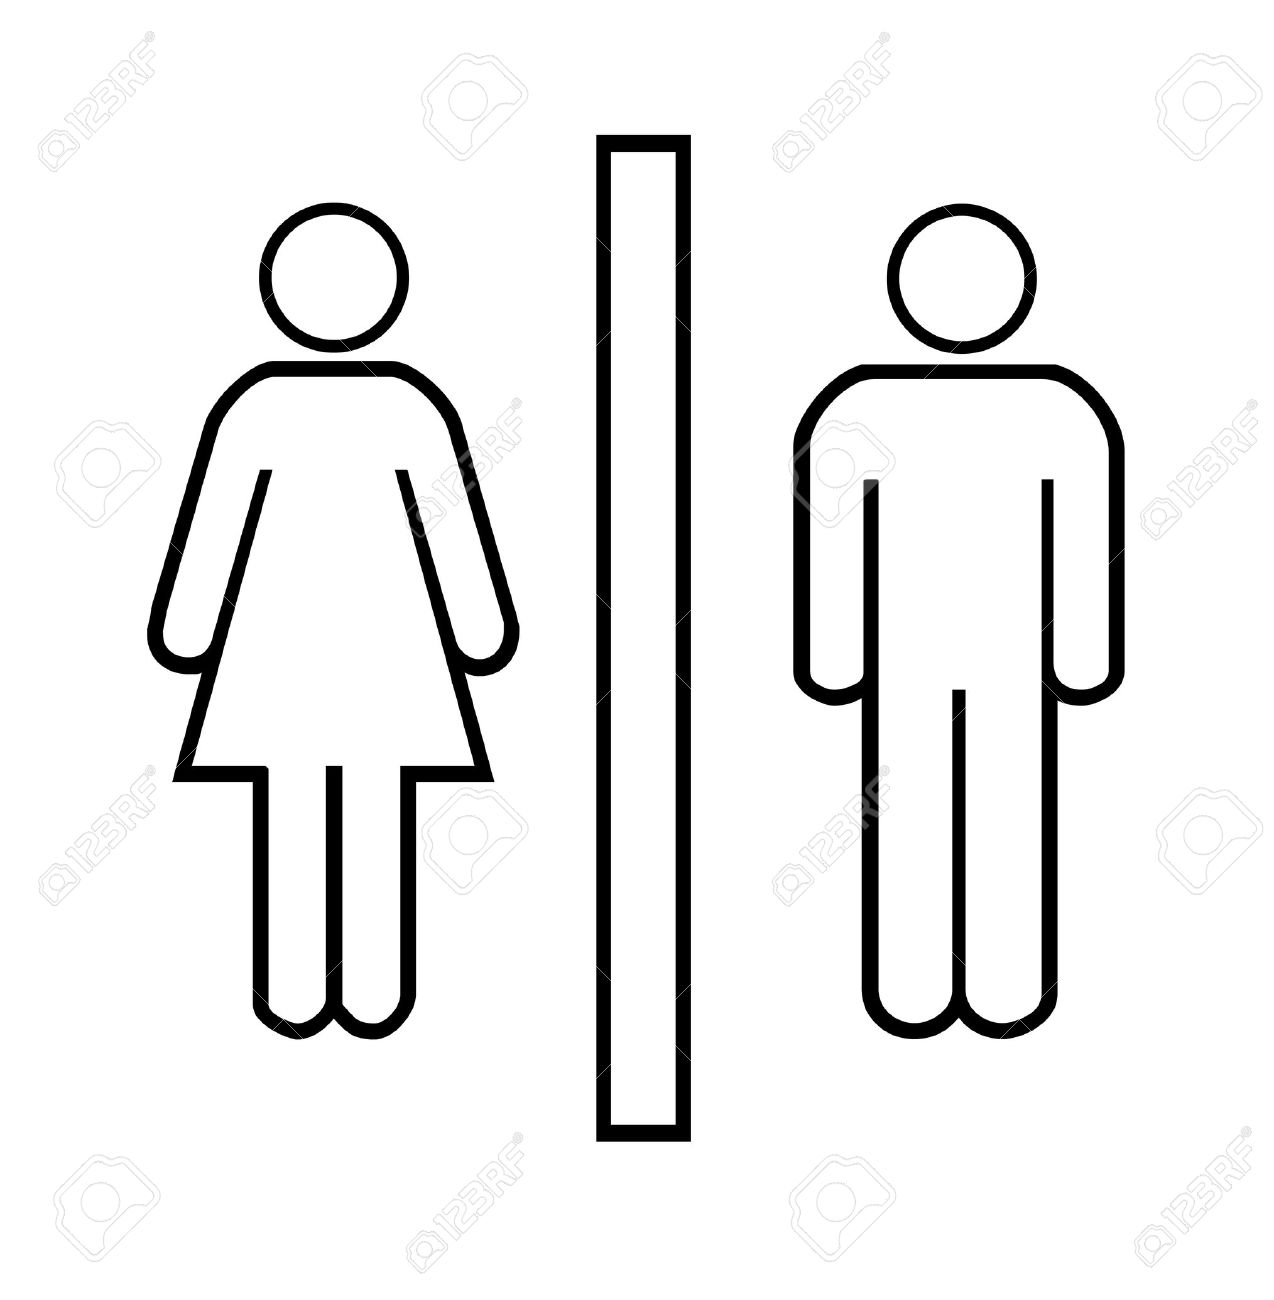 Restroom signs for men and woman over white background Stock Photo - 9314495